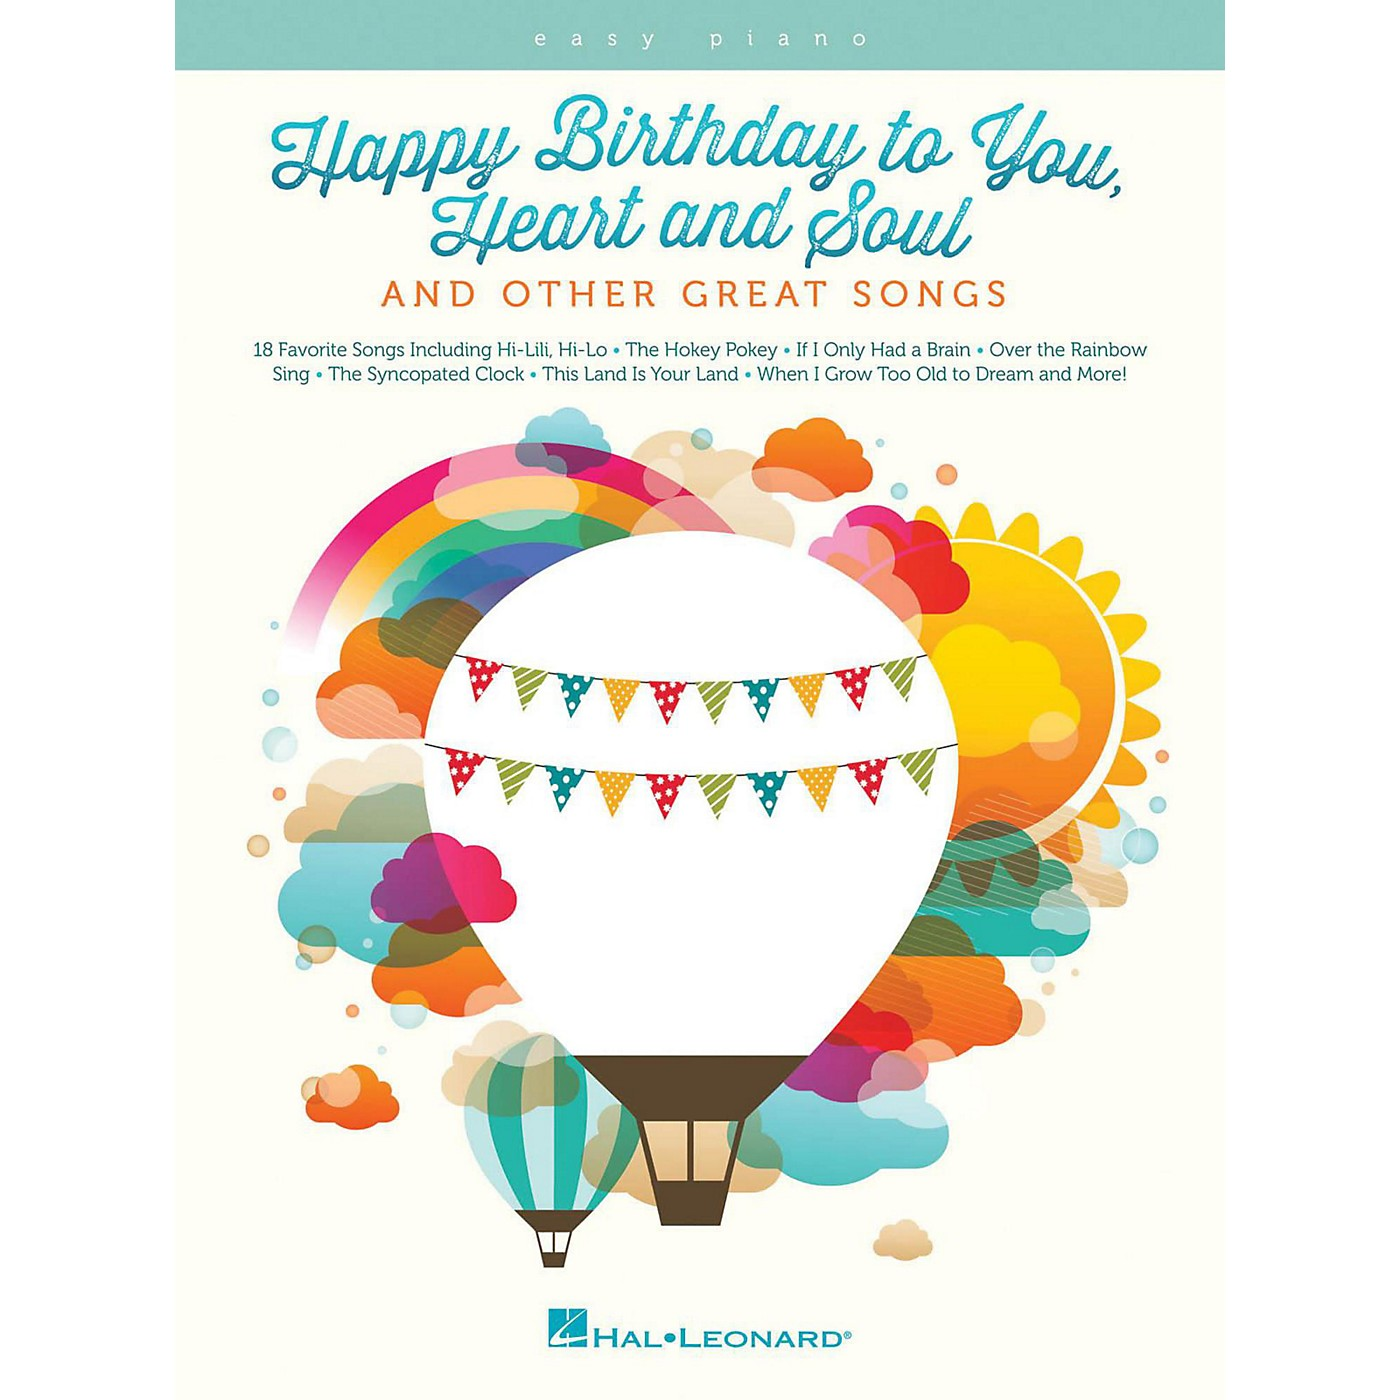 Hal Leonard Happy Birthday To You, Heart And Soul, And Other Great Songs For Easy Piano thumbnail